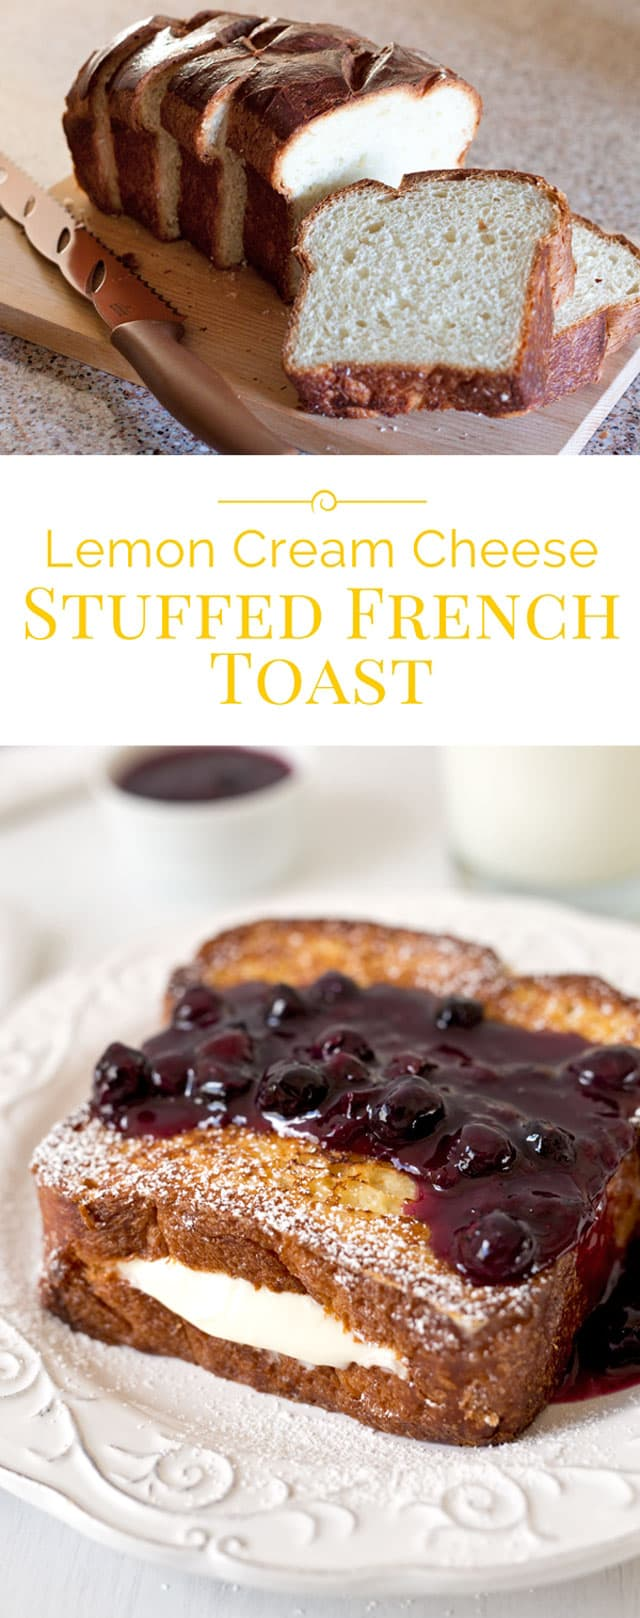 A decadent, heavenly delicious French toast filled with a light, lemony cream cheese filling. It's made with a fabulous brioche bread and served with a sweet, tart blueberry compote. You need to make this!